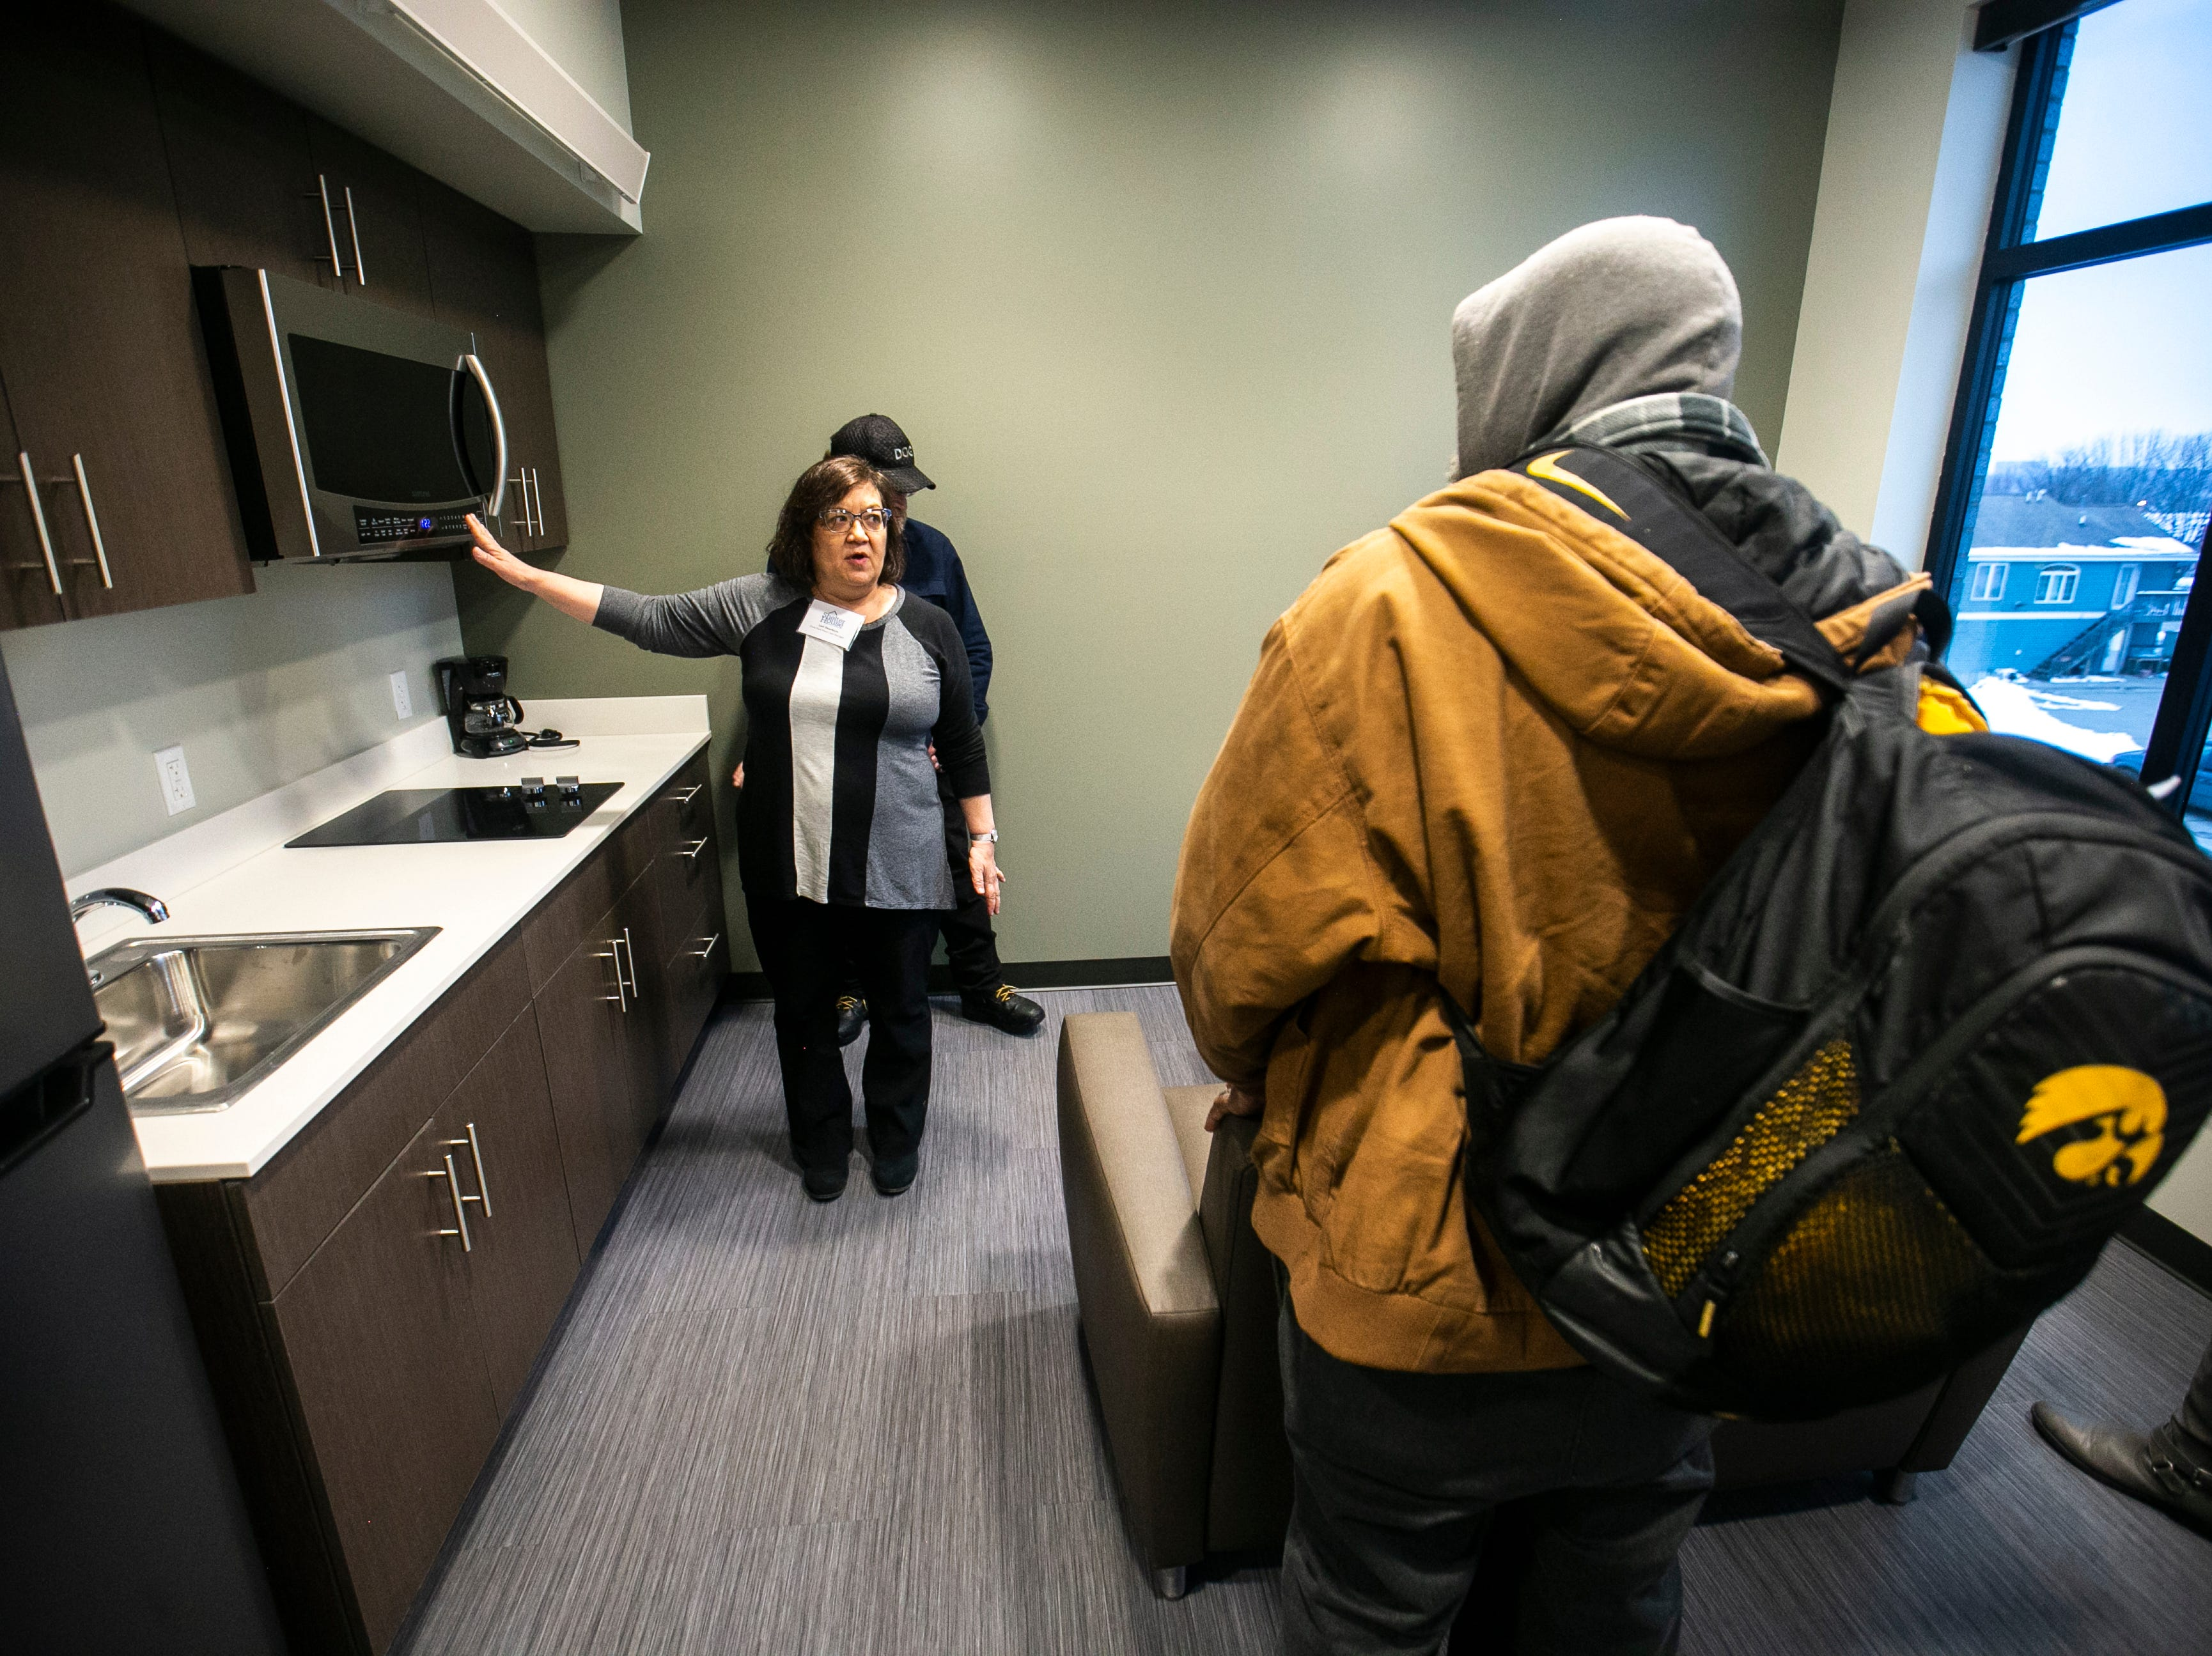 Community members tour the newly completed homeless housing apartment complex on Wednesday, Jan. 16, 2019, at Cross Park Place in Iowa City, Iowa.